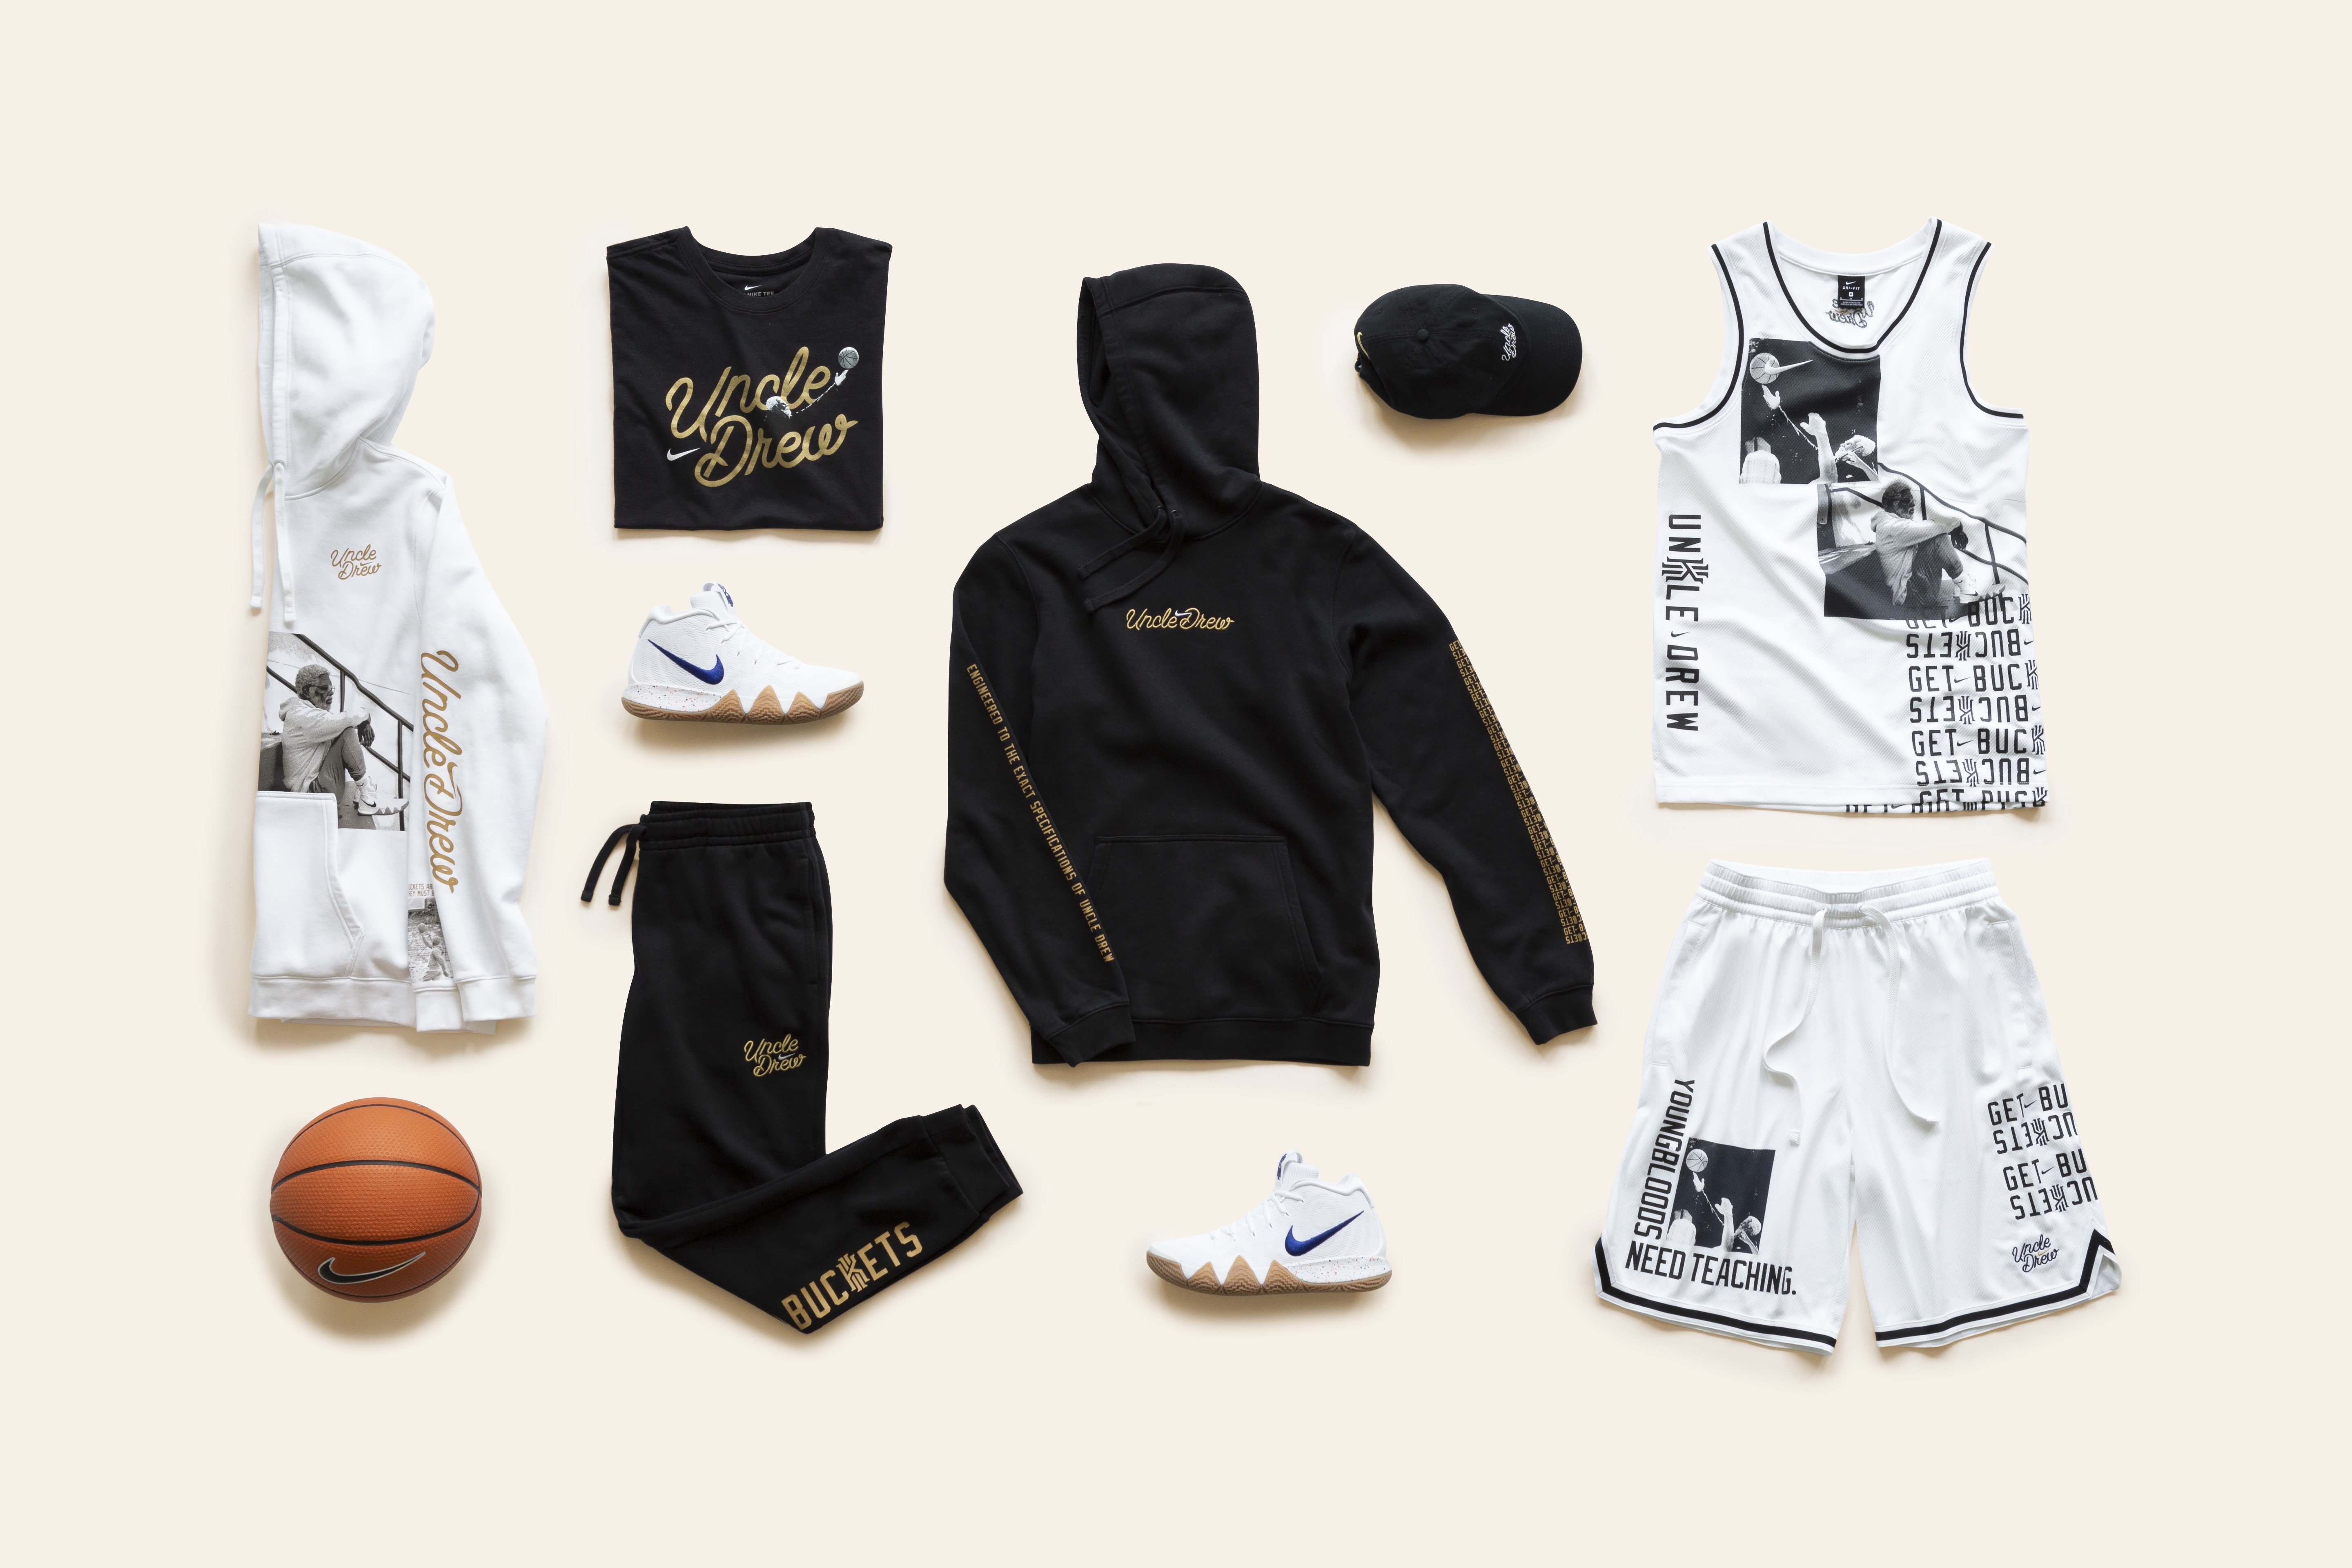 Nike unveils Kyrie 'Uncle Drew' apparel collection | theScore com